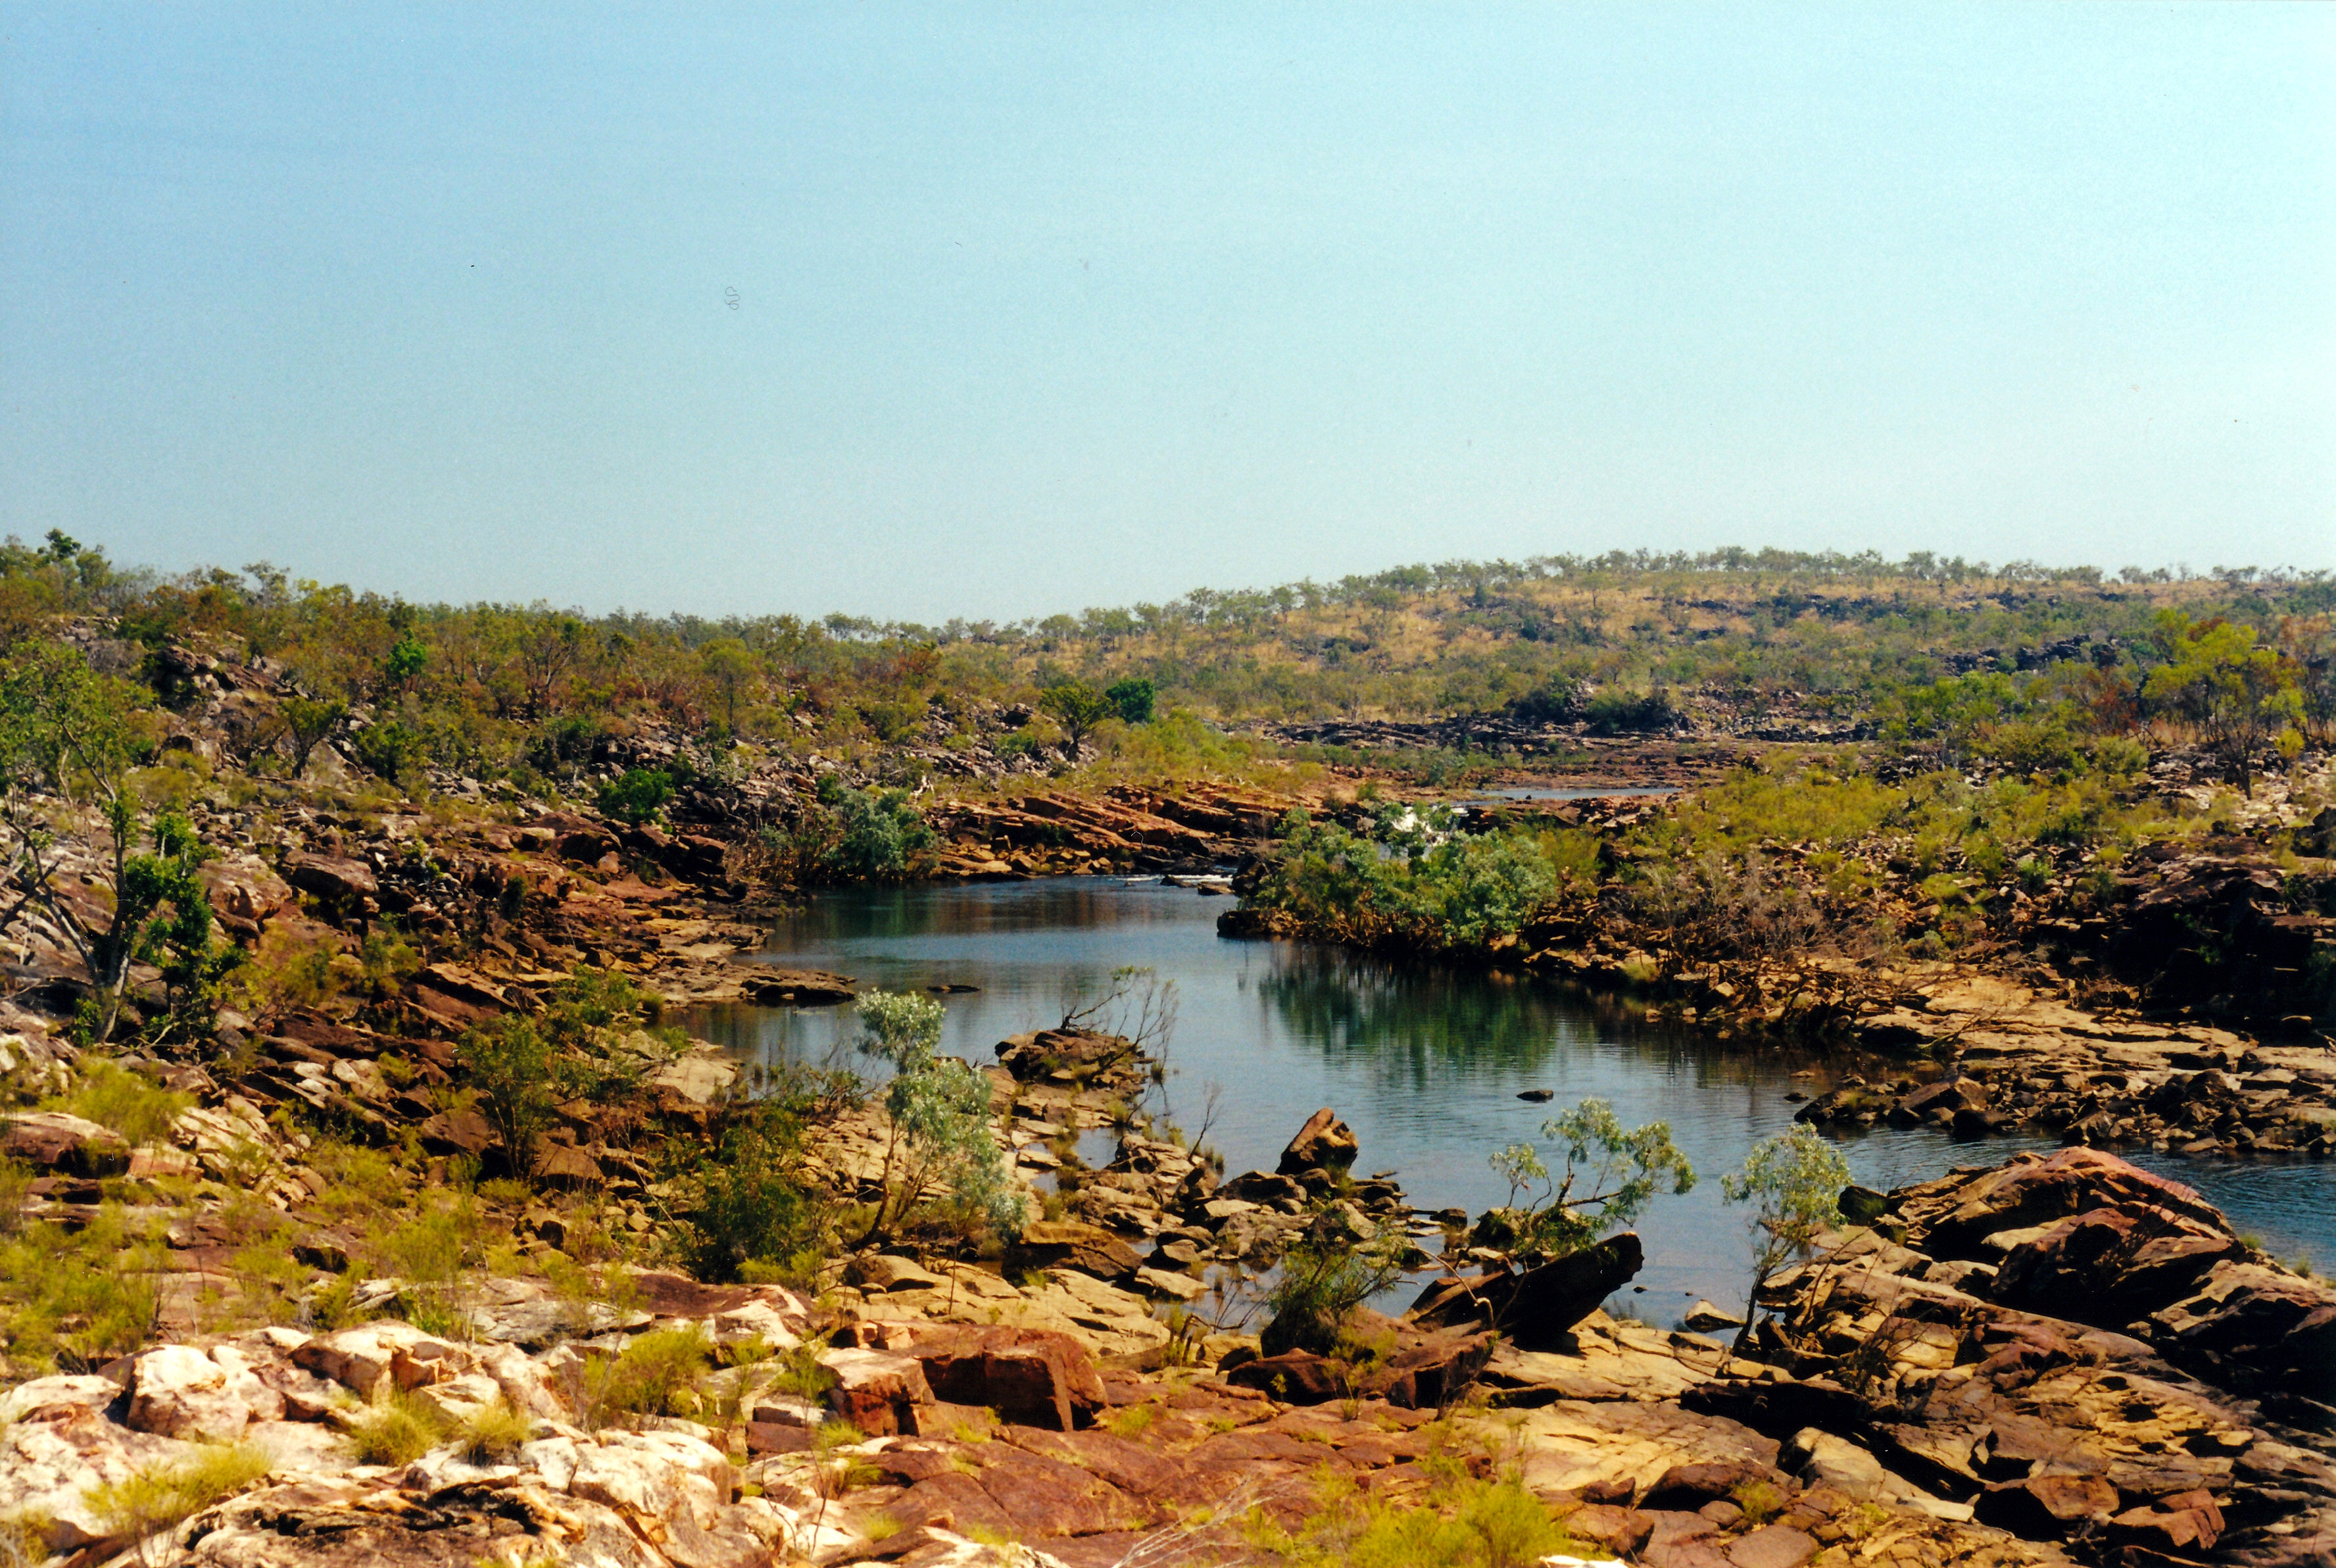 08-06-2000 13 approach to mitchell falls.jpg